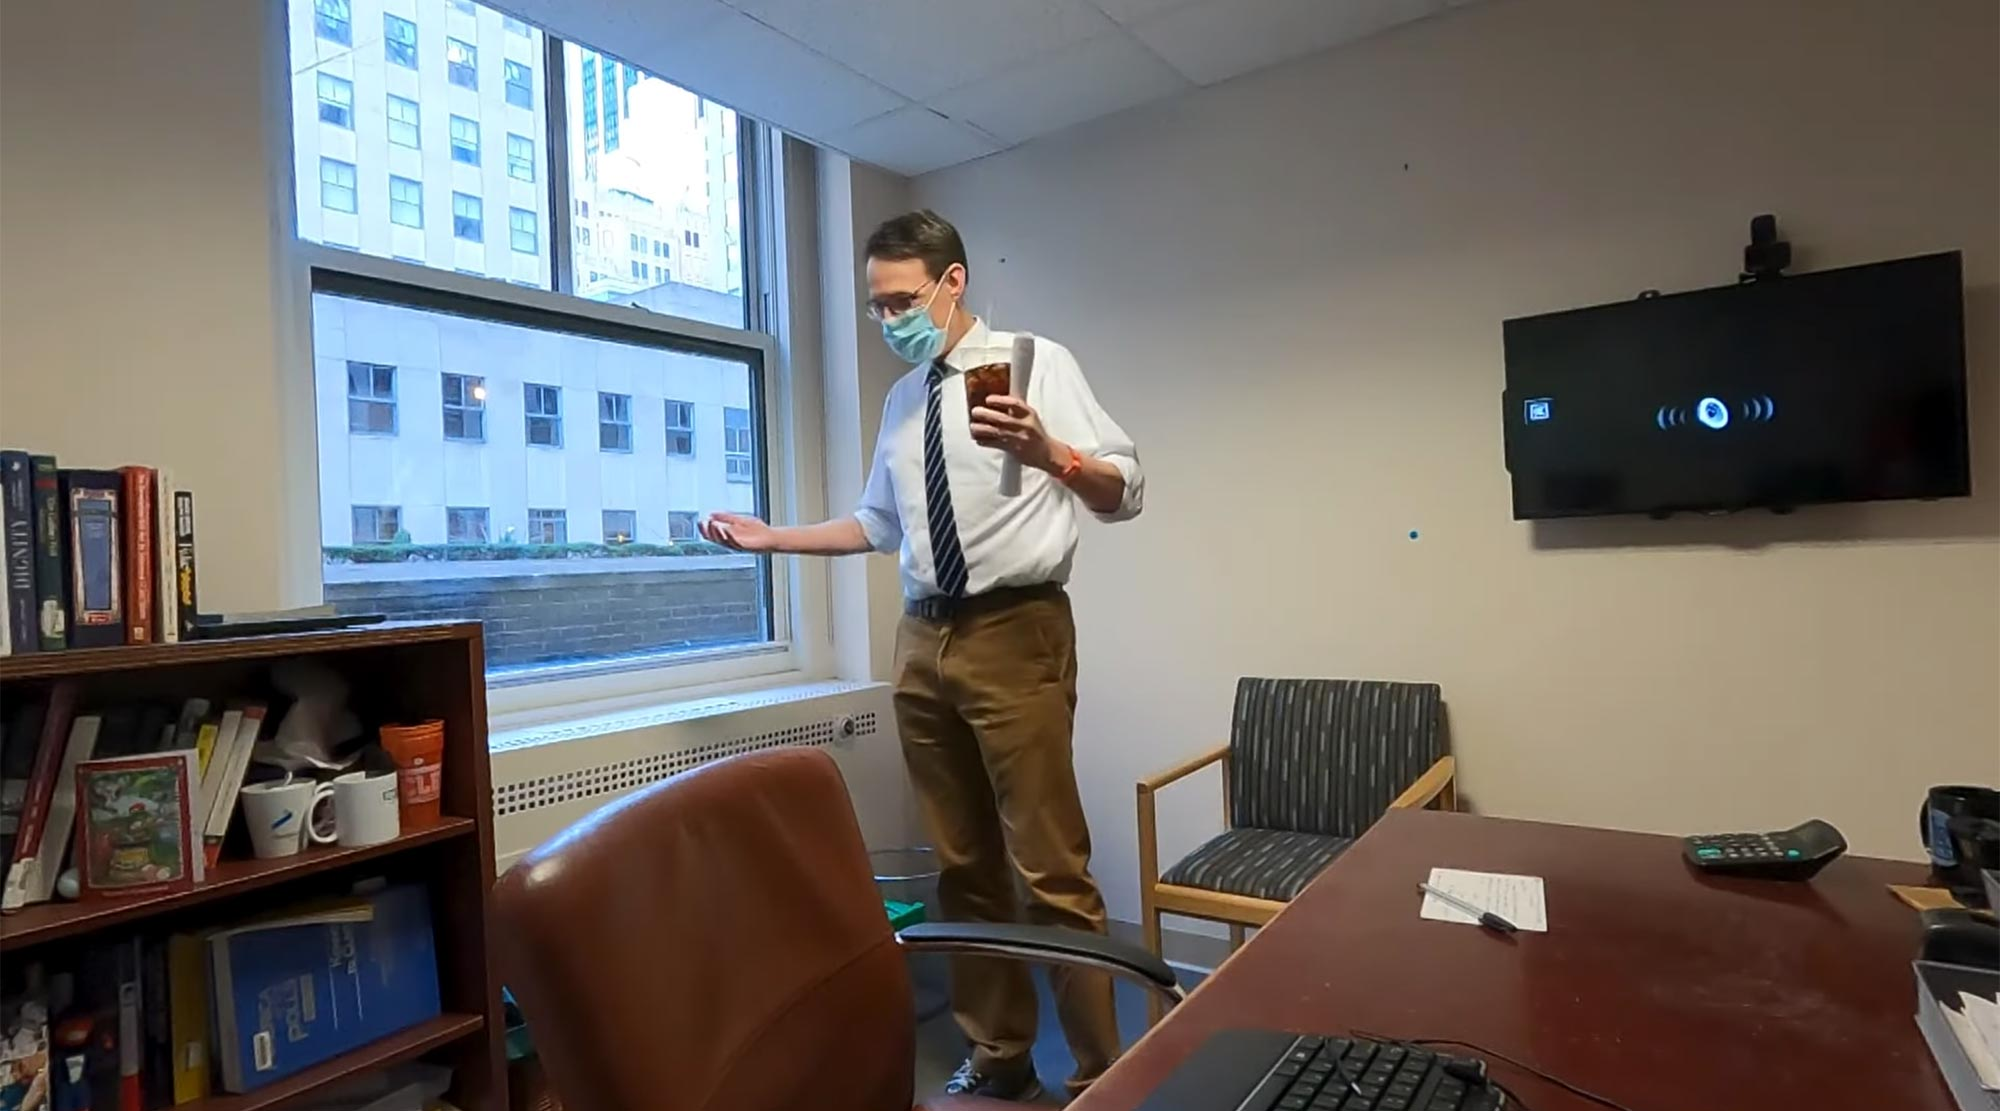 Jimmy Fallon Surprises Steve Kornacki by Cleaning His Office